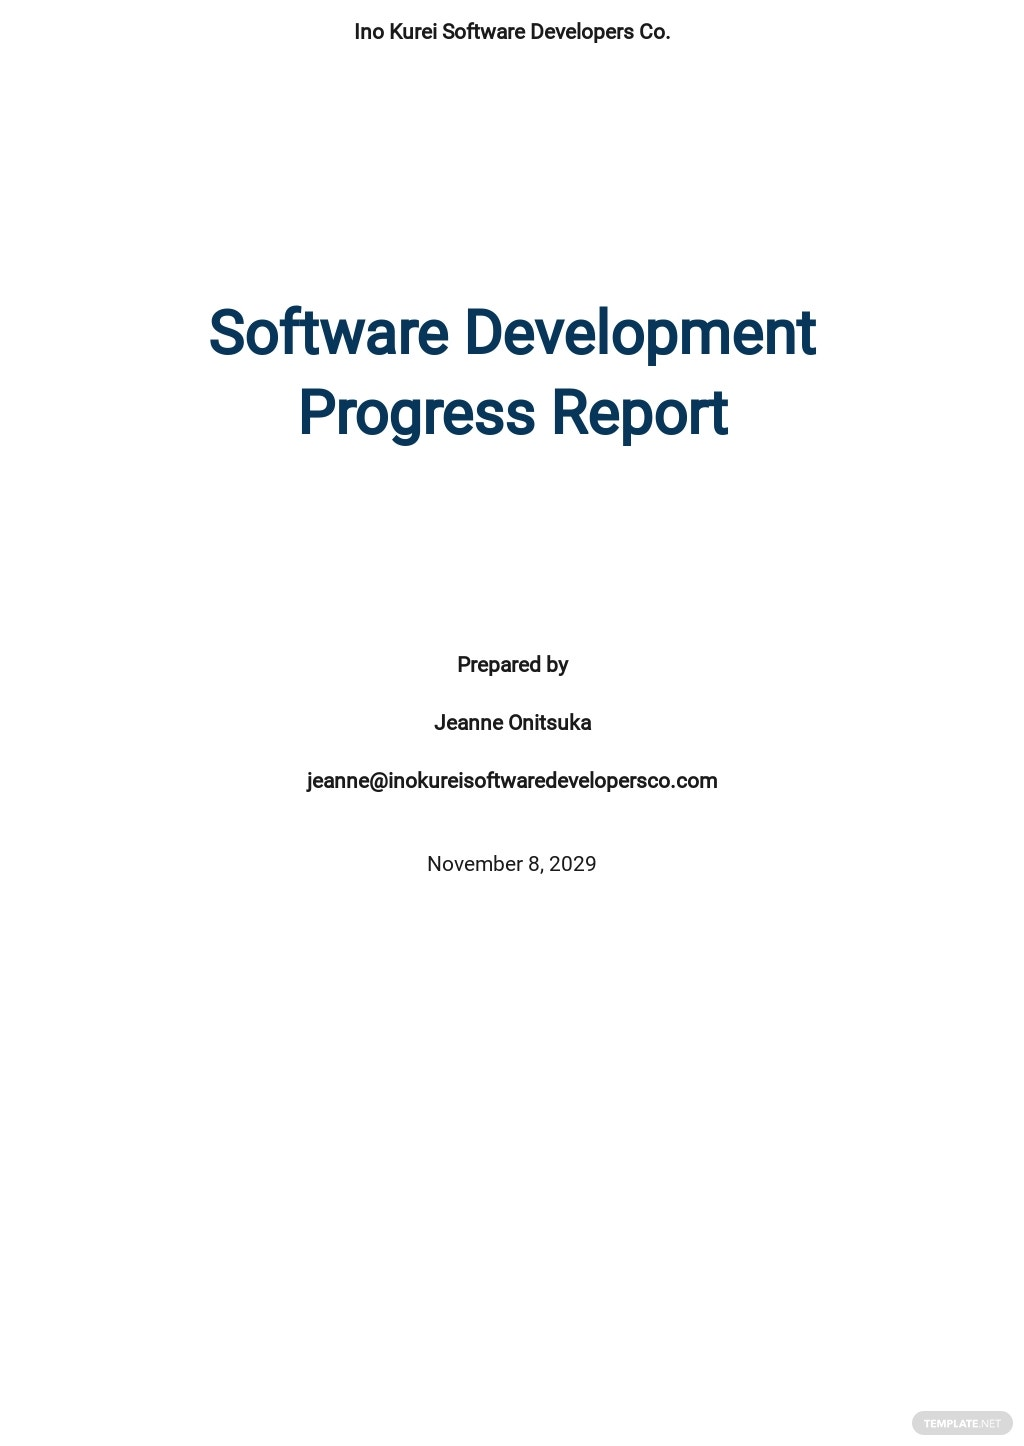 Software Development Progress Report Template